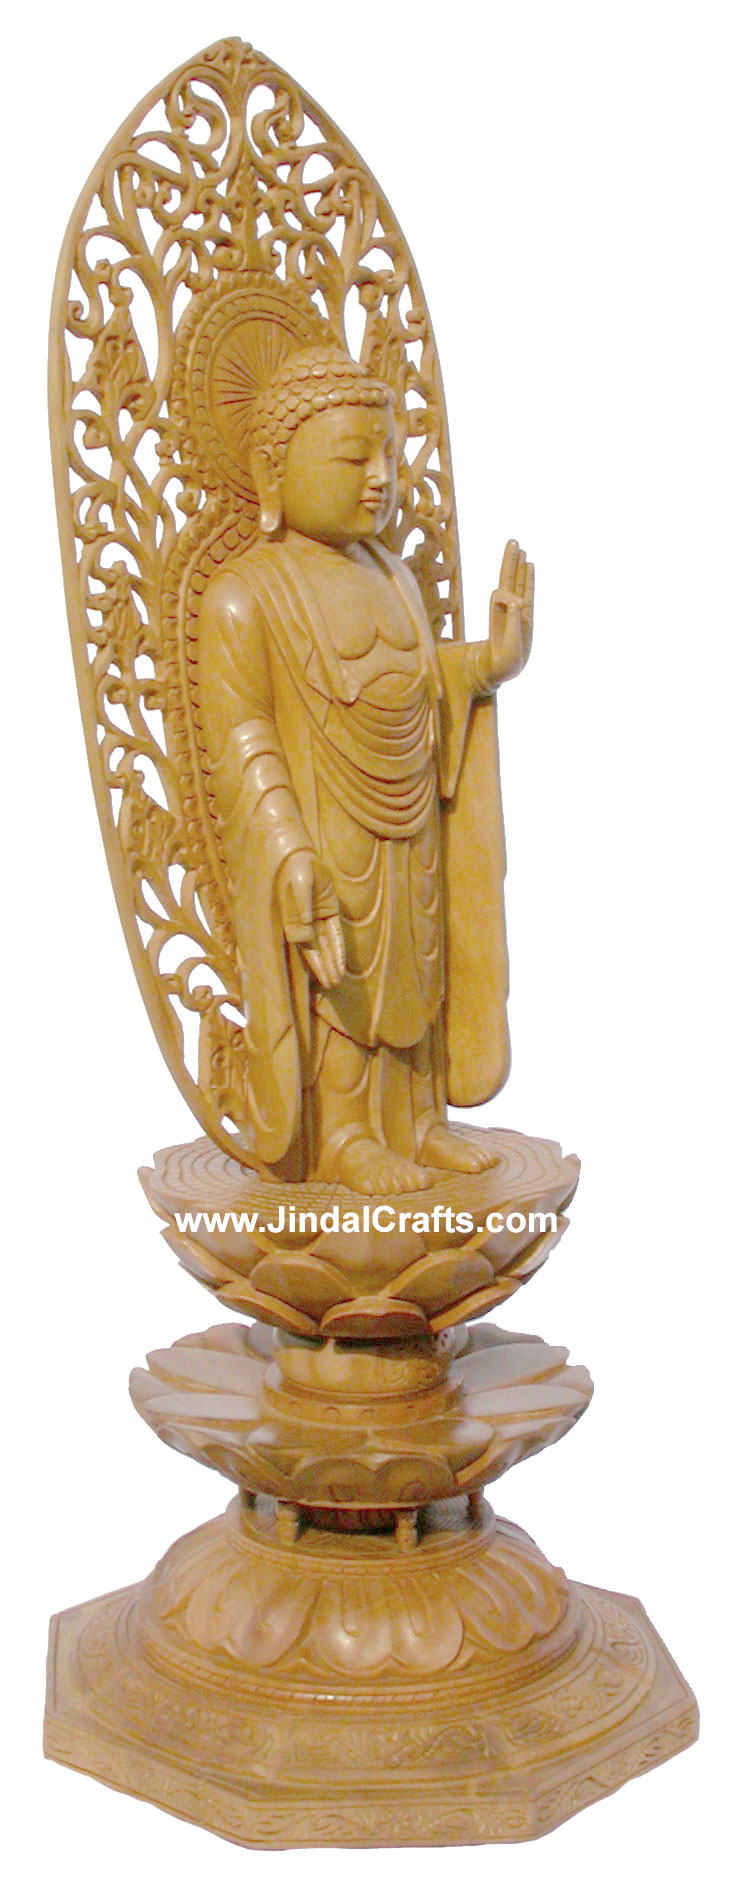 Handmade Wood Sculpture Buddha in Meditation